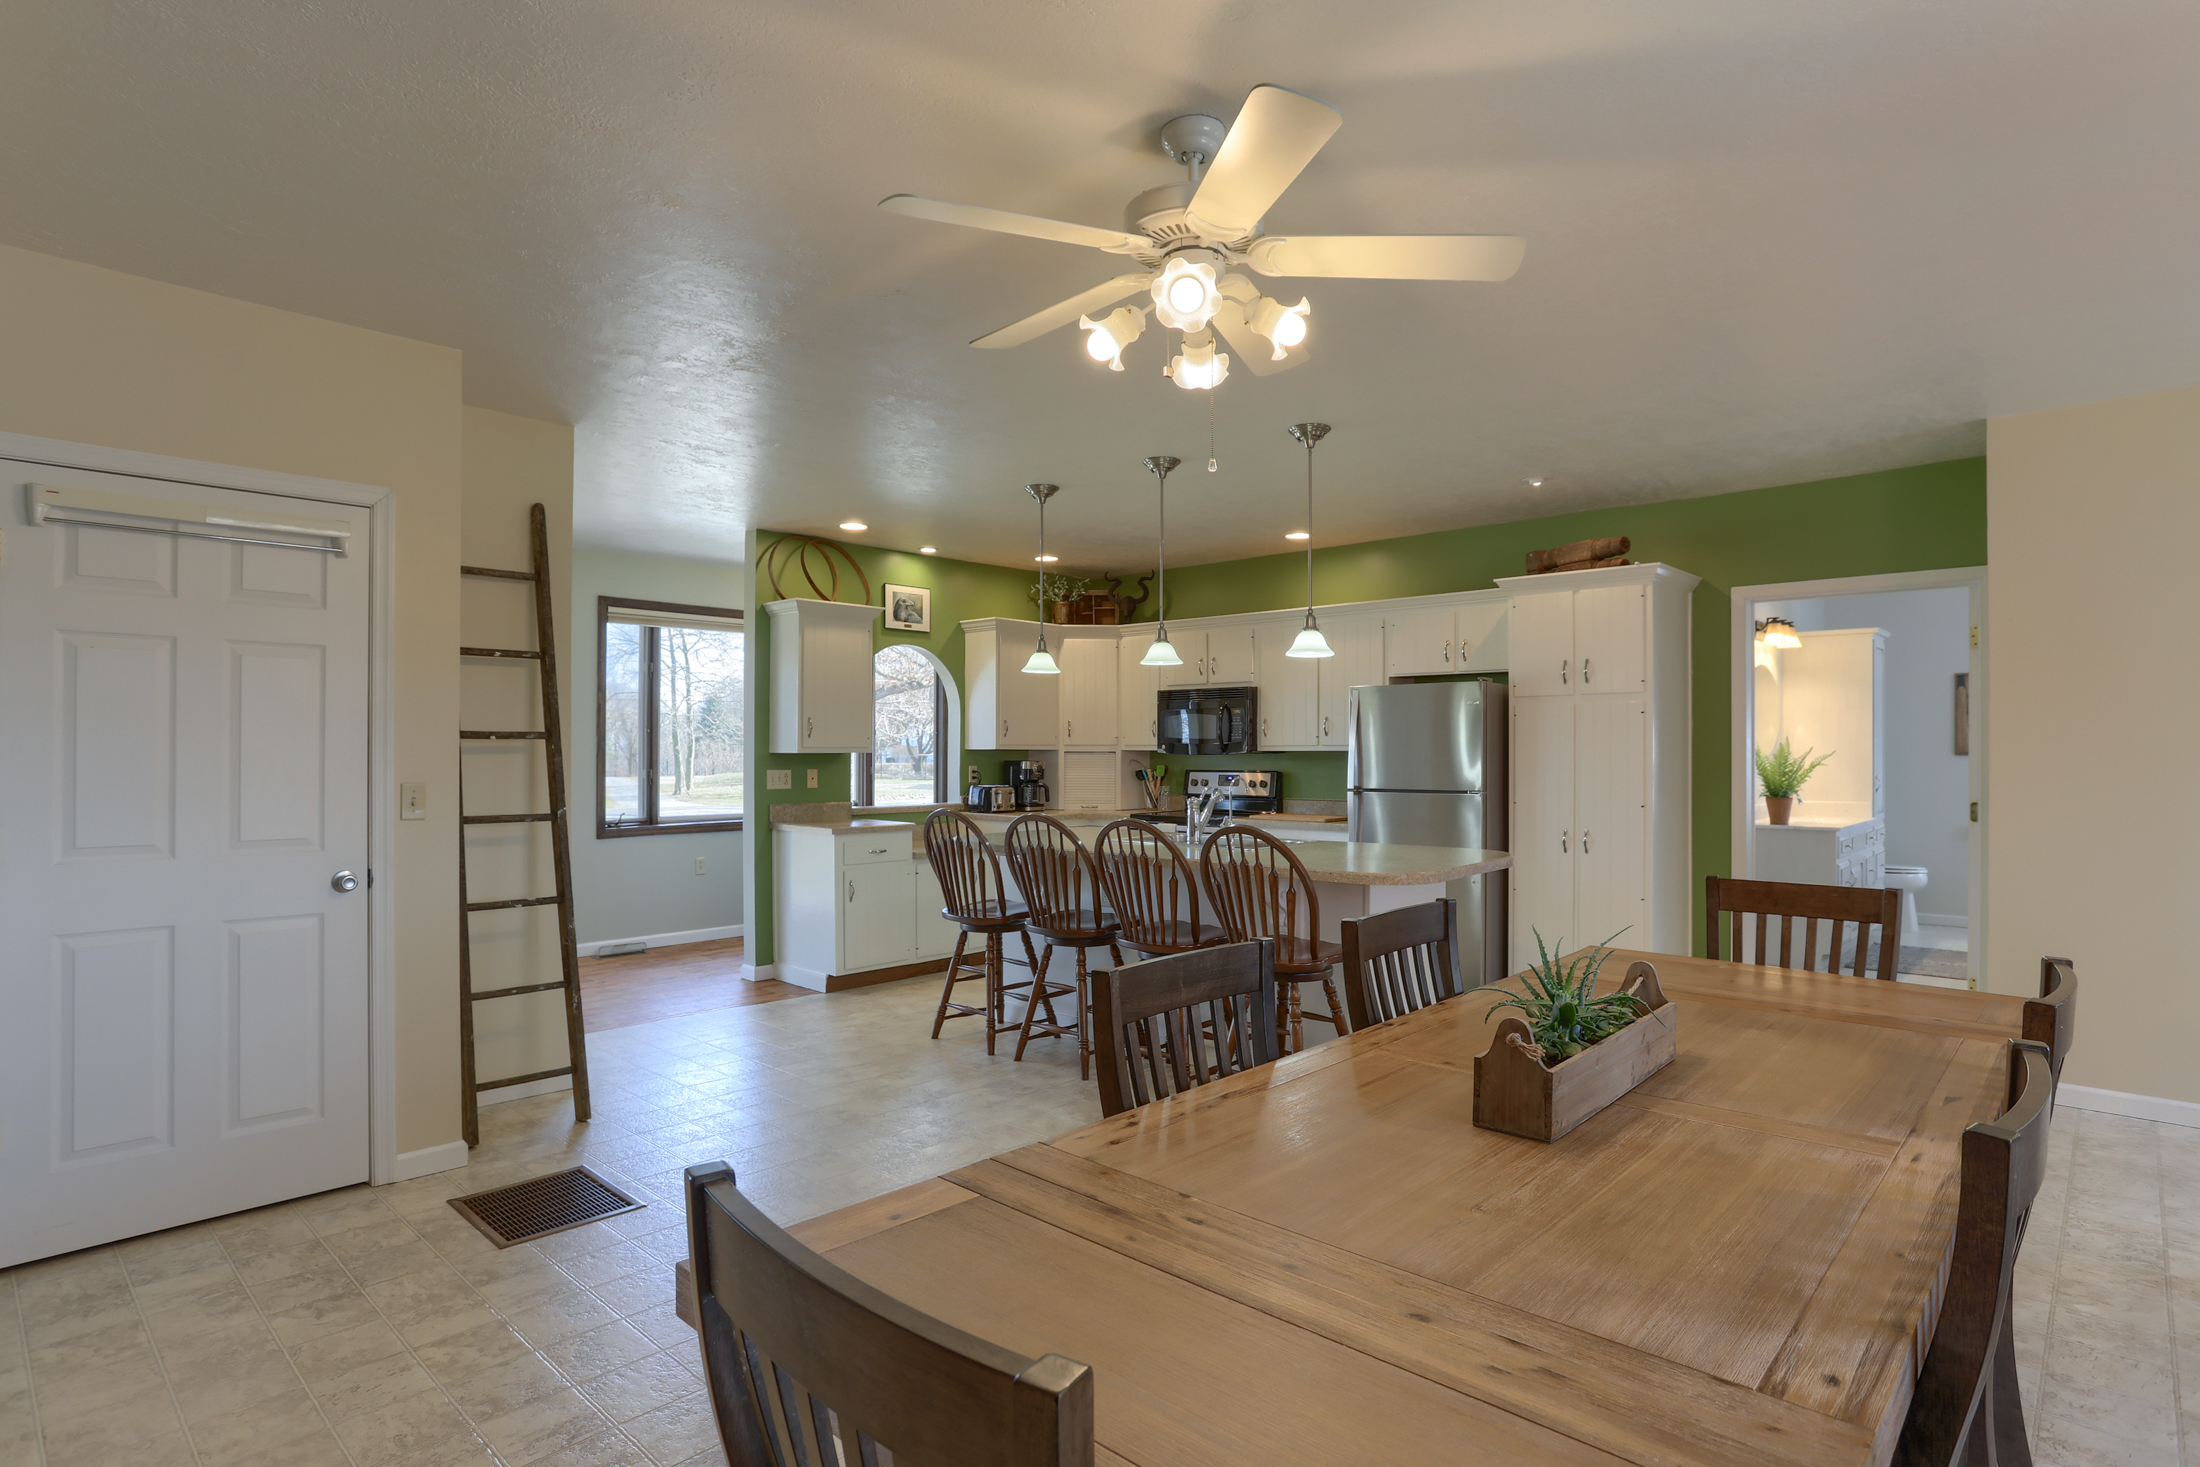 285 Strack Drive - large kitchen with eat-in area